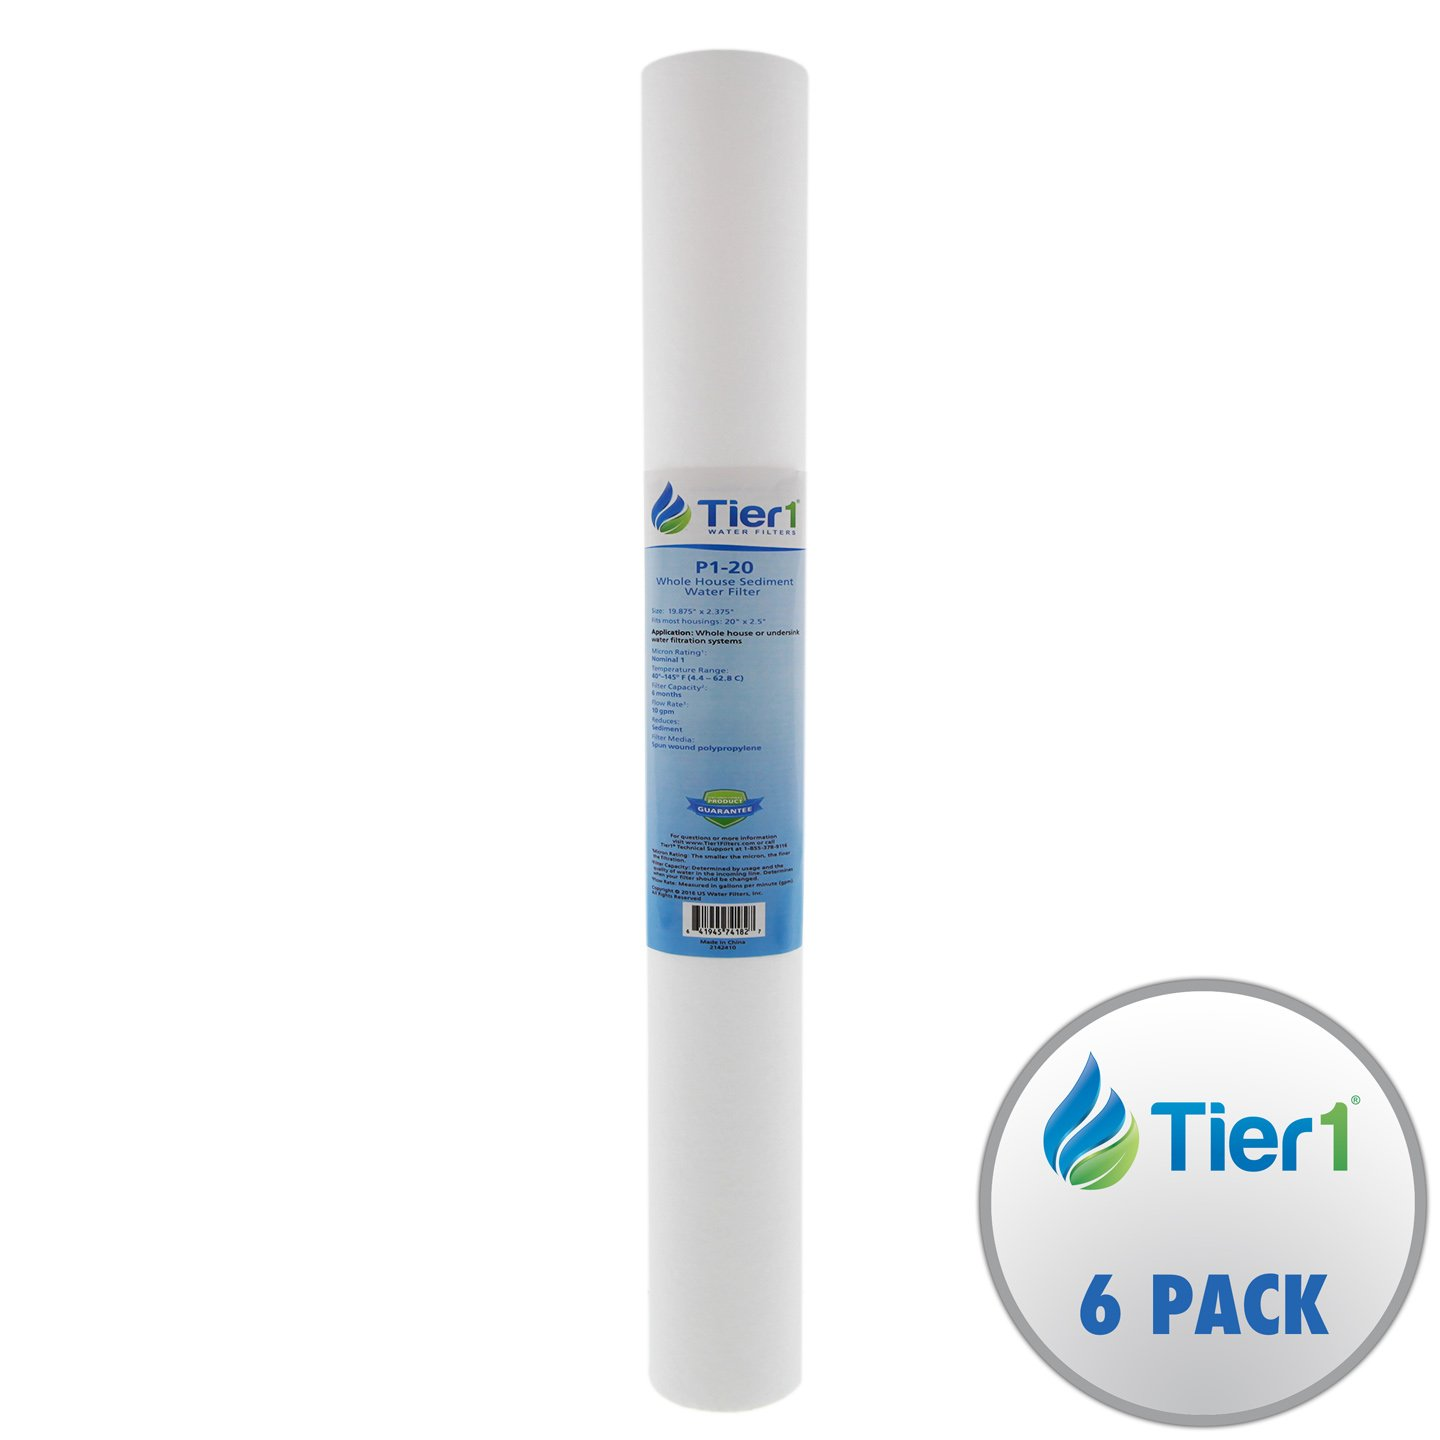 Tier1 P1-20 1 Micron 20 x 2.5 Spun Wound Polypropylene Sediment Purtrex PX01-20 Comparable Replacement Water Filter 6 Pack